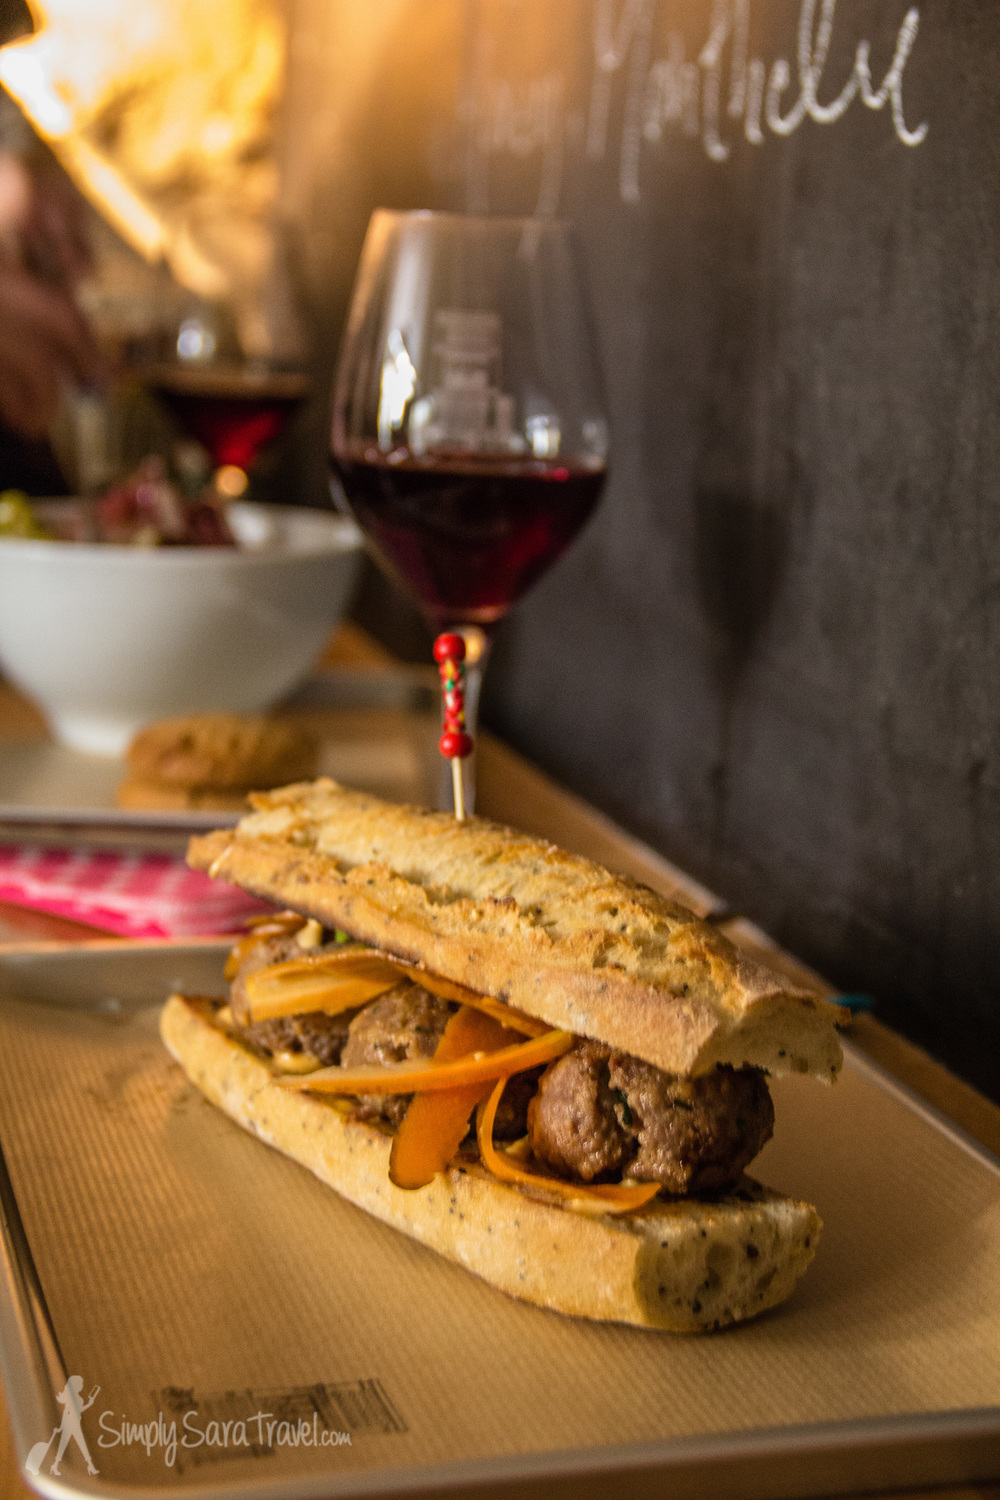 No introduction needed - the duck meatball sandwich